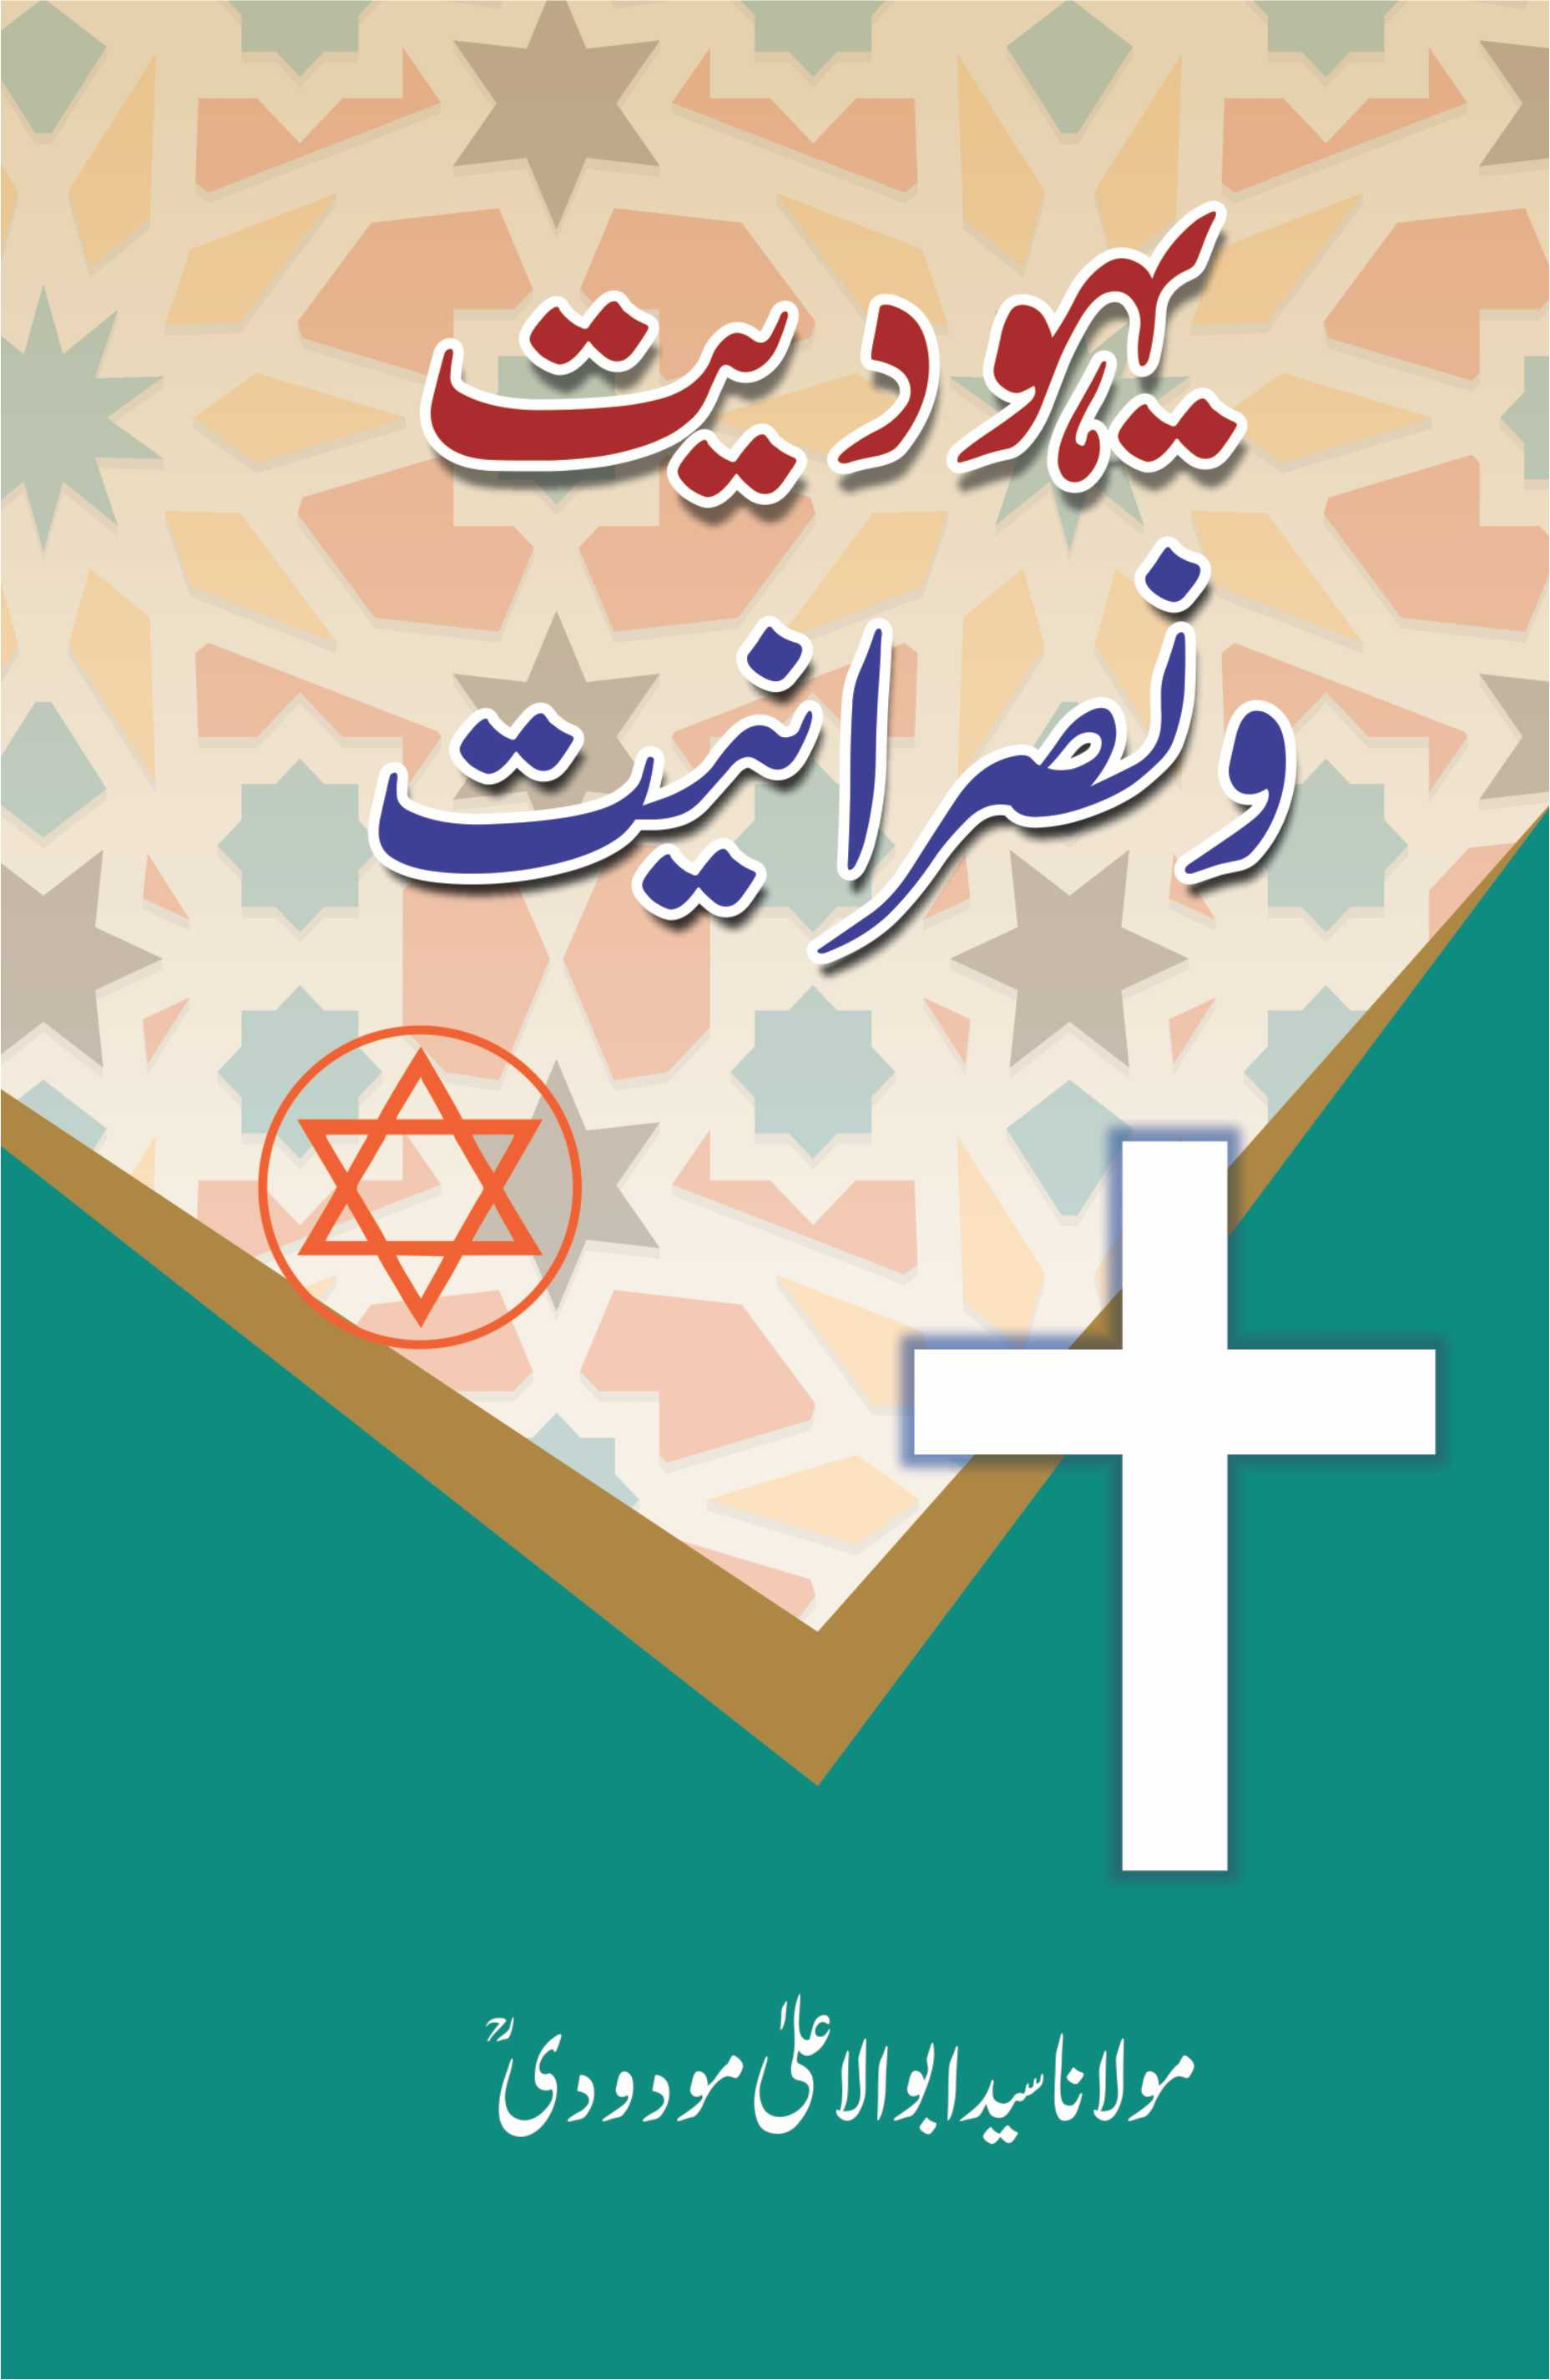 Maulana Maududi Books In Urdu Pdf